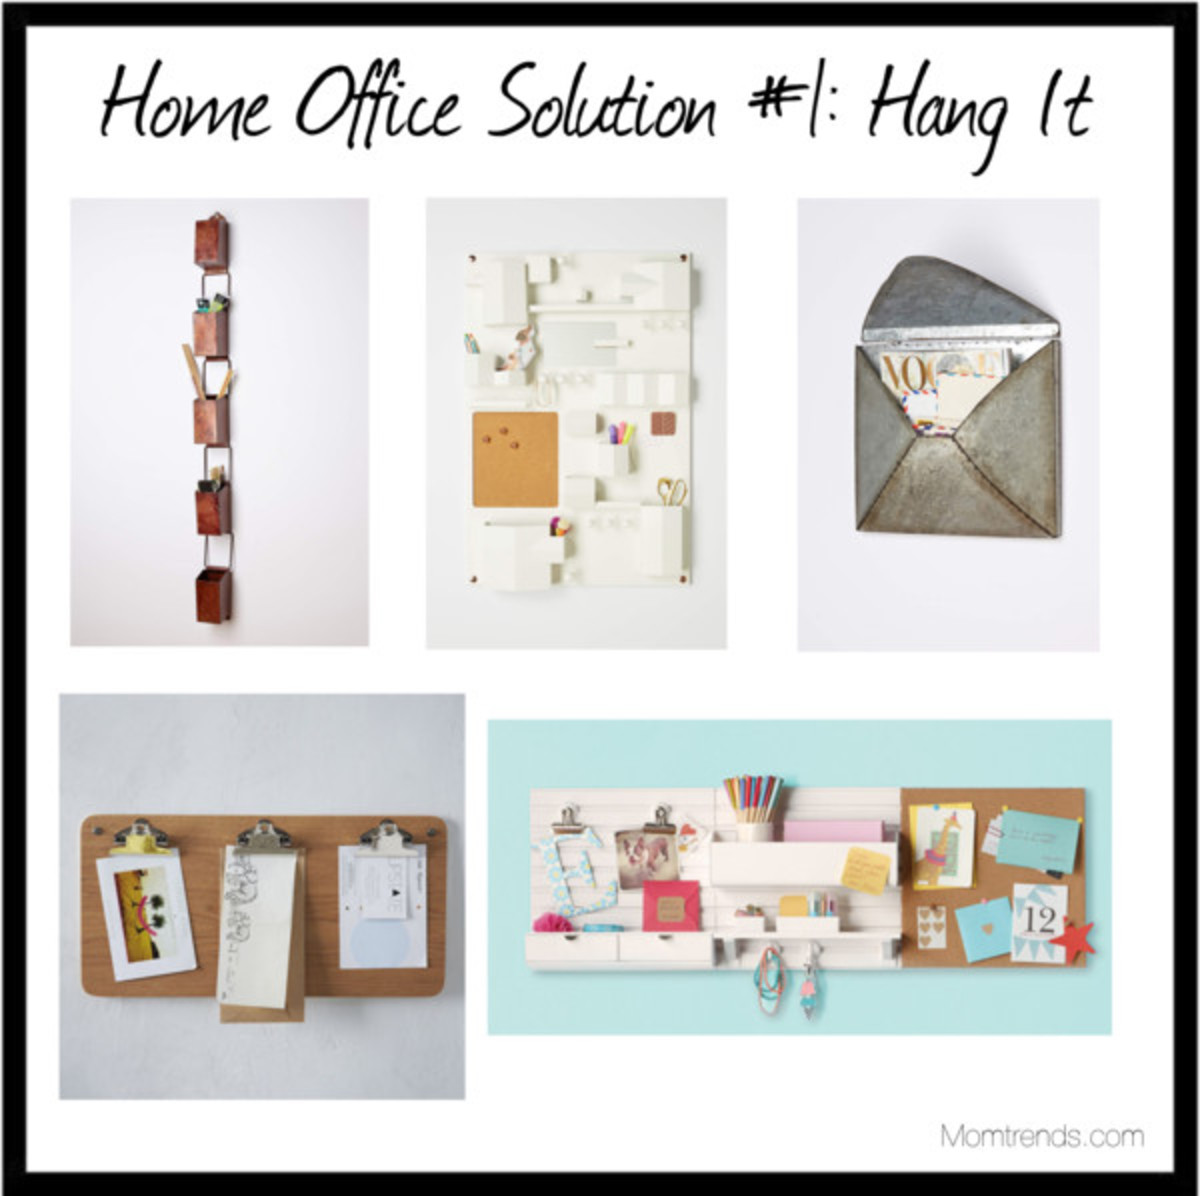 Home Office Solution #1:Hang It